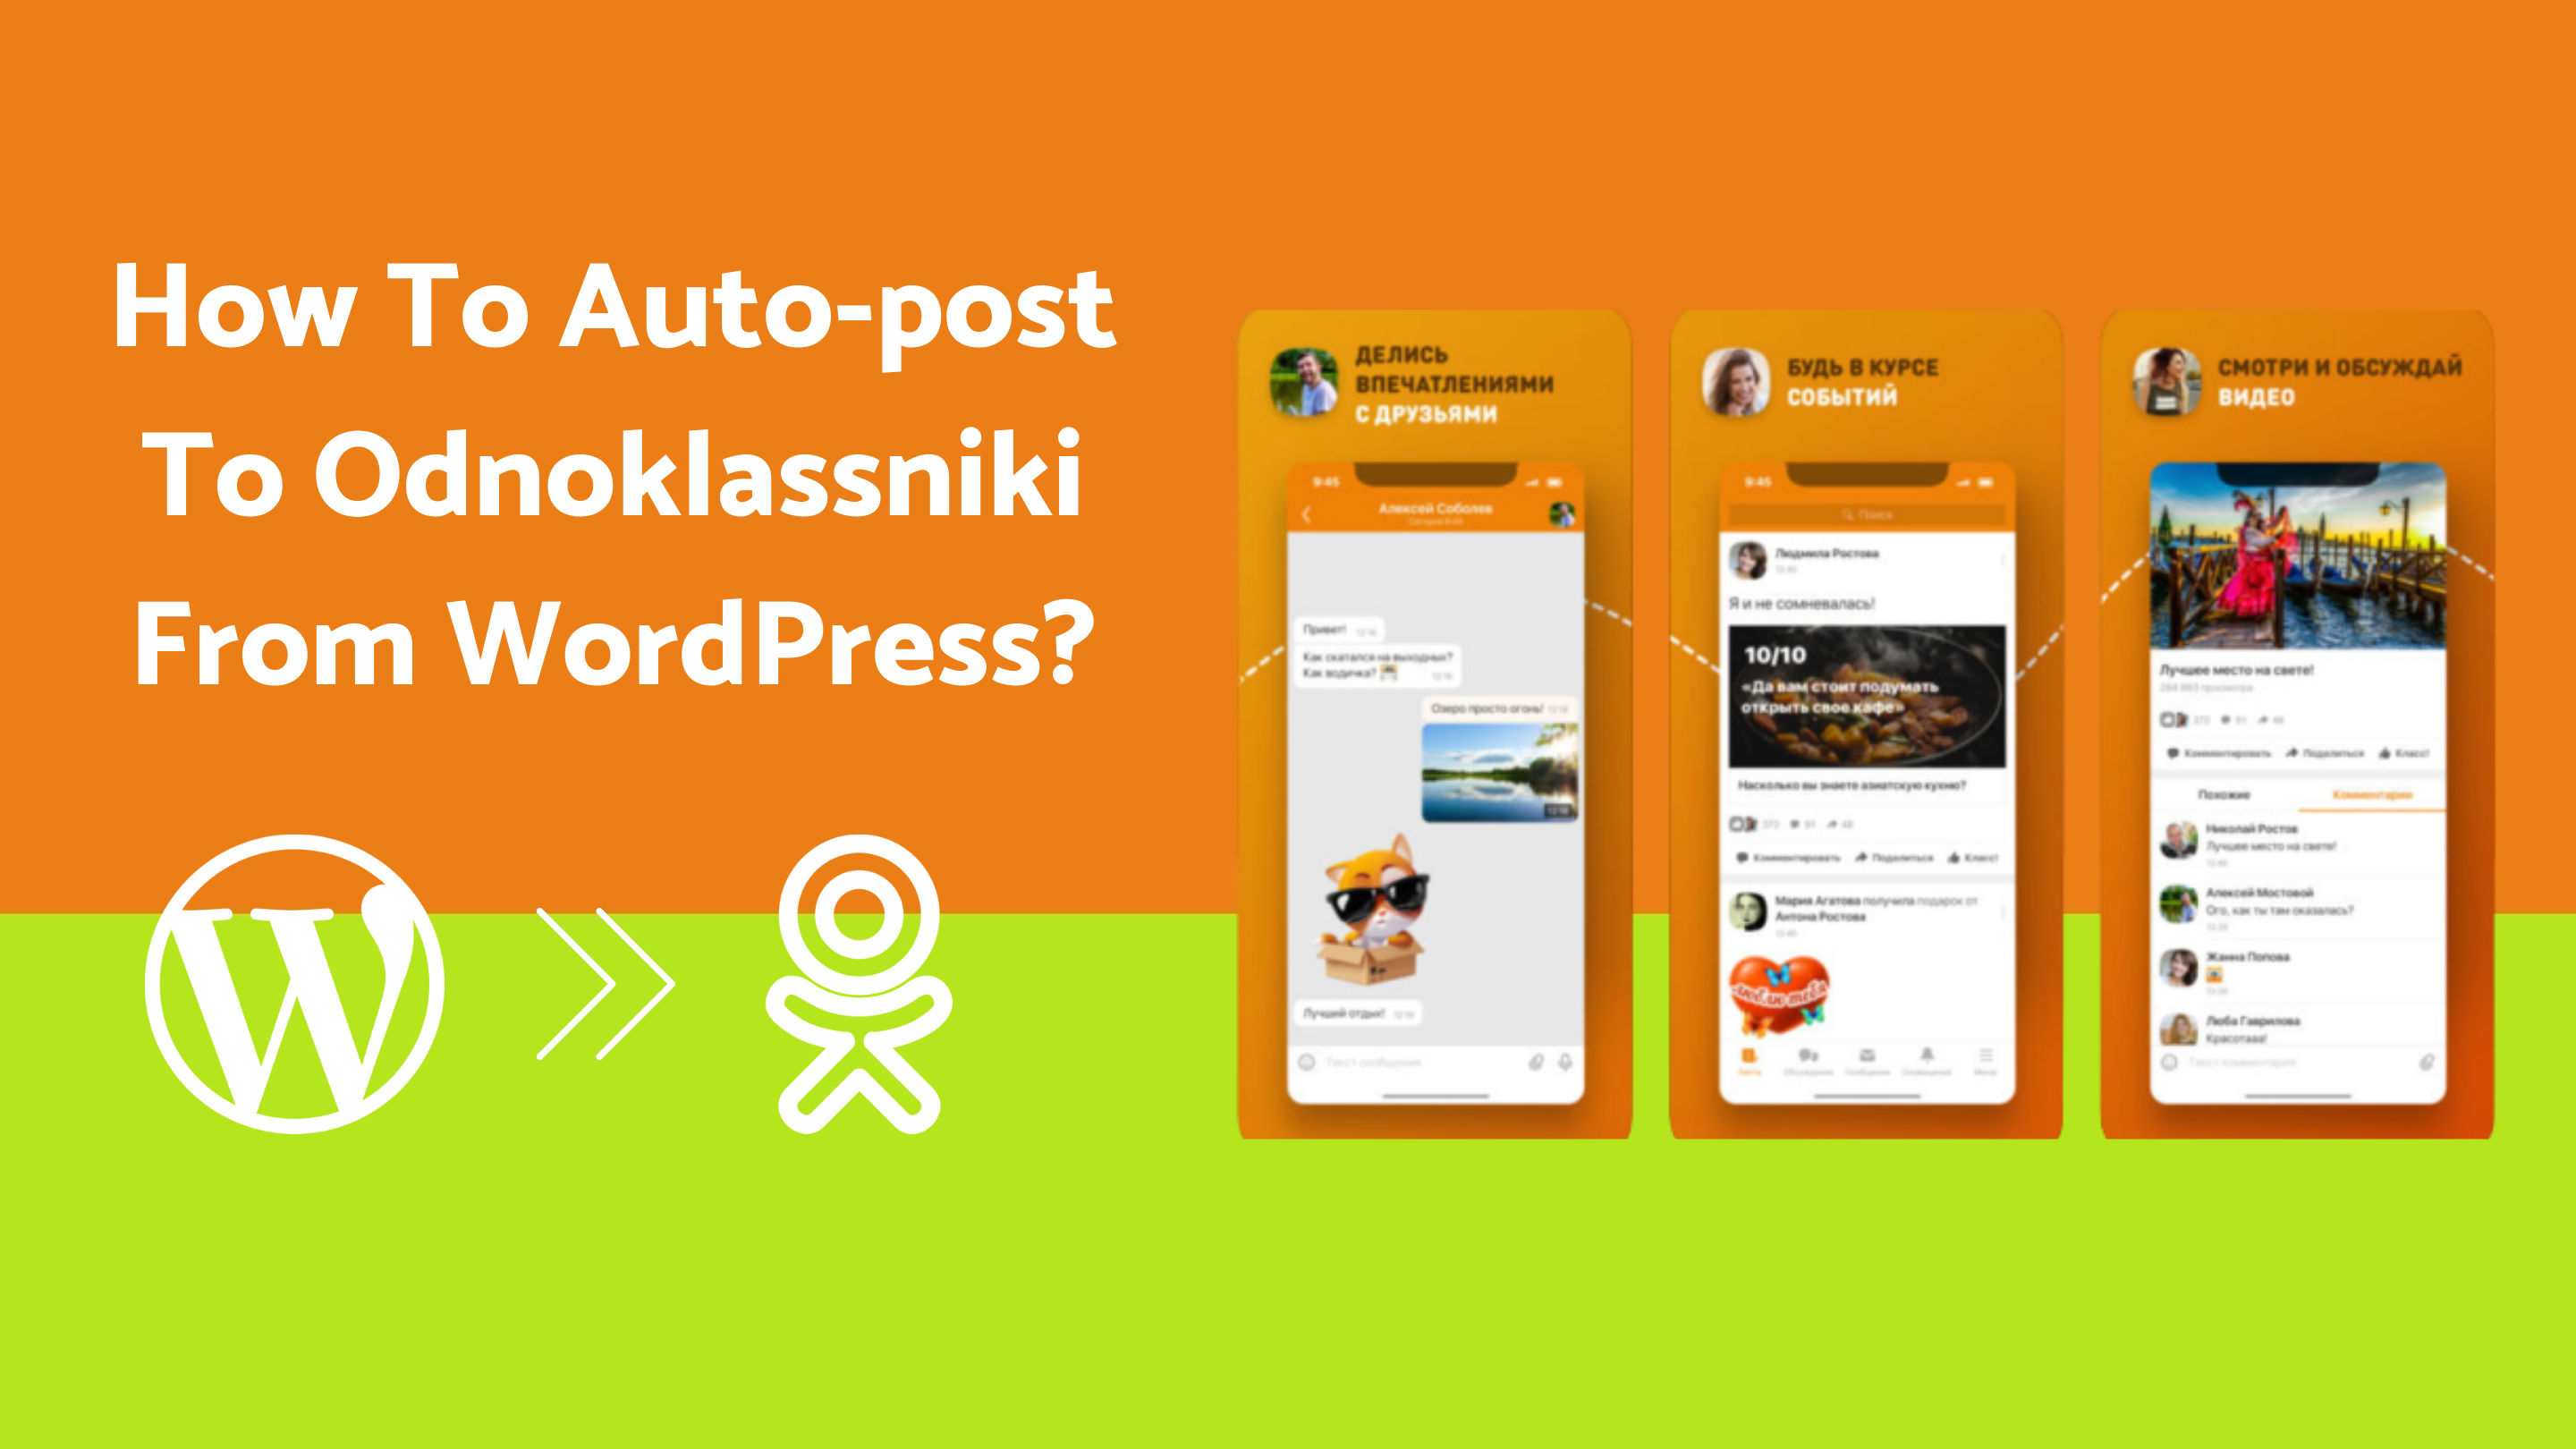 How To Auto-Post To Odnoklassniki From WordPress [A Complete Guide]